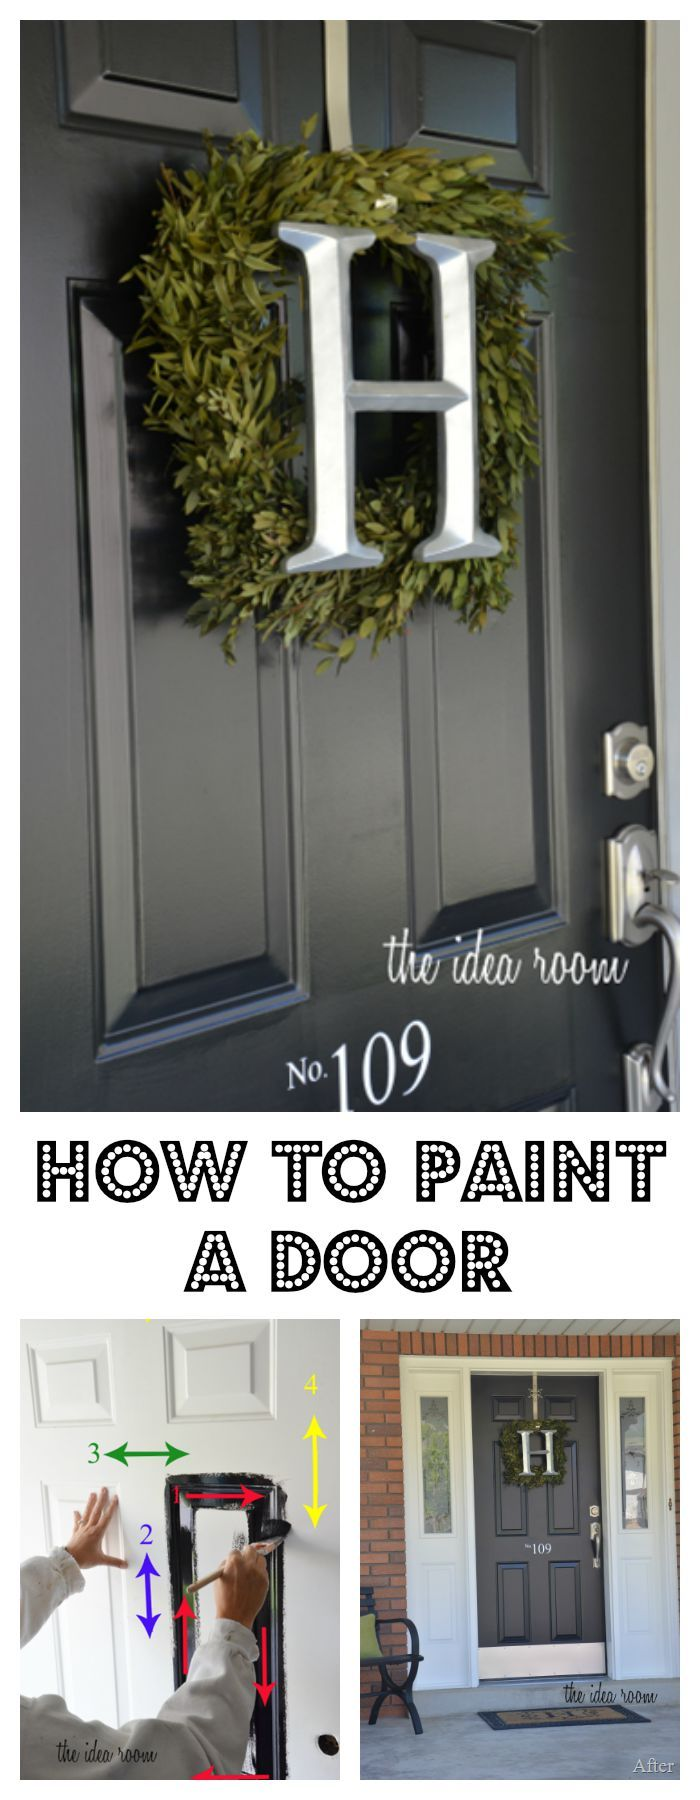 Learn how to paint a door with these helpful tips. We also share our favorite painting tools to give you that professional finish.